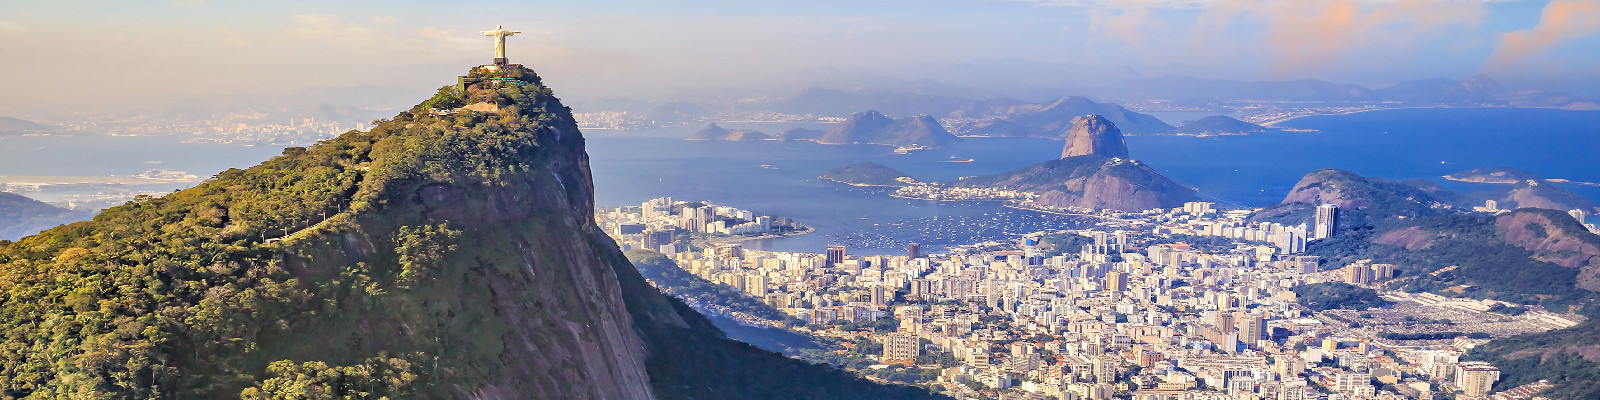 Customize your South America trip